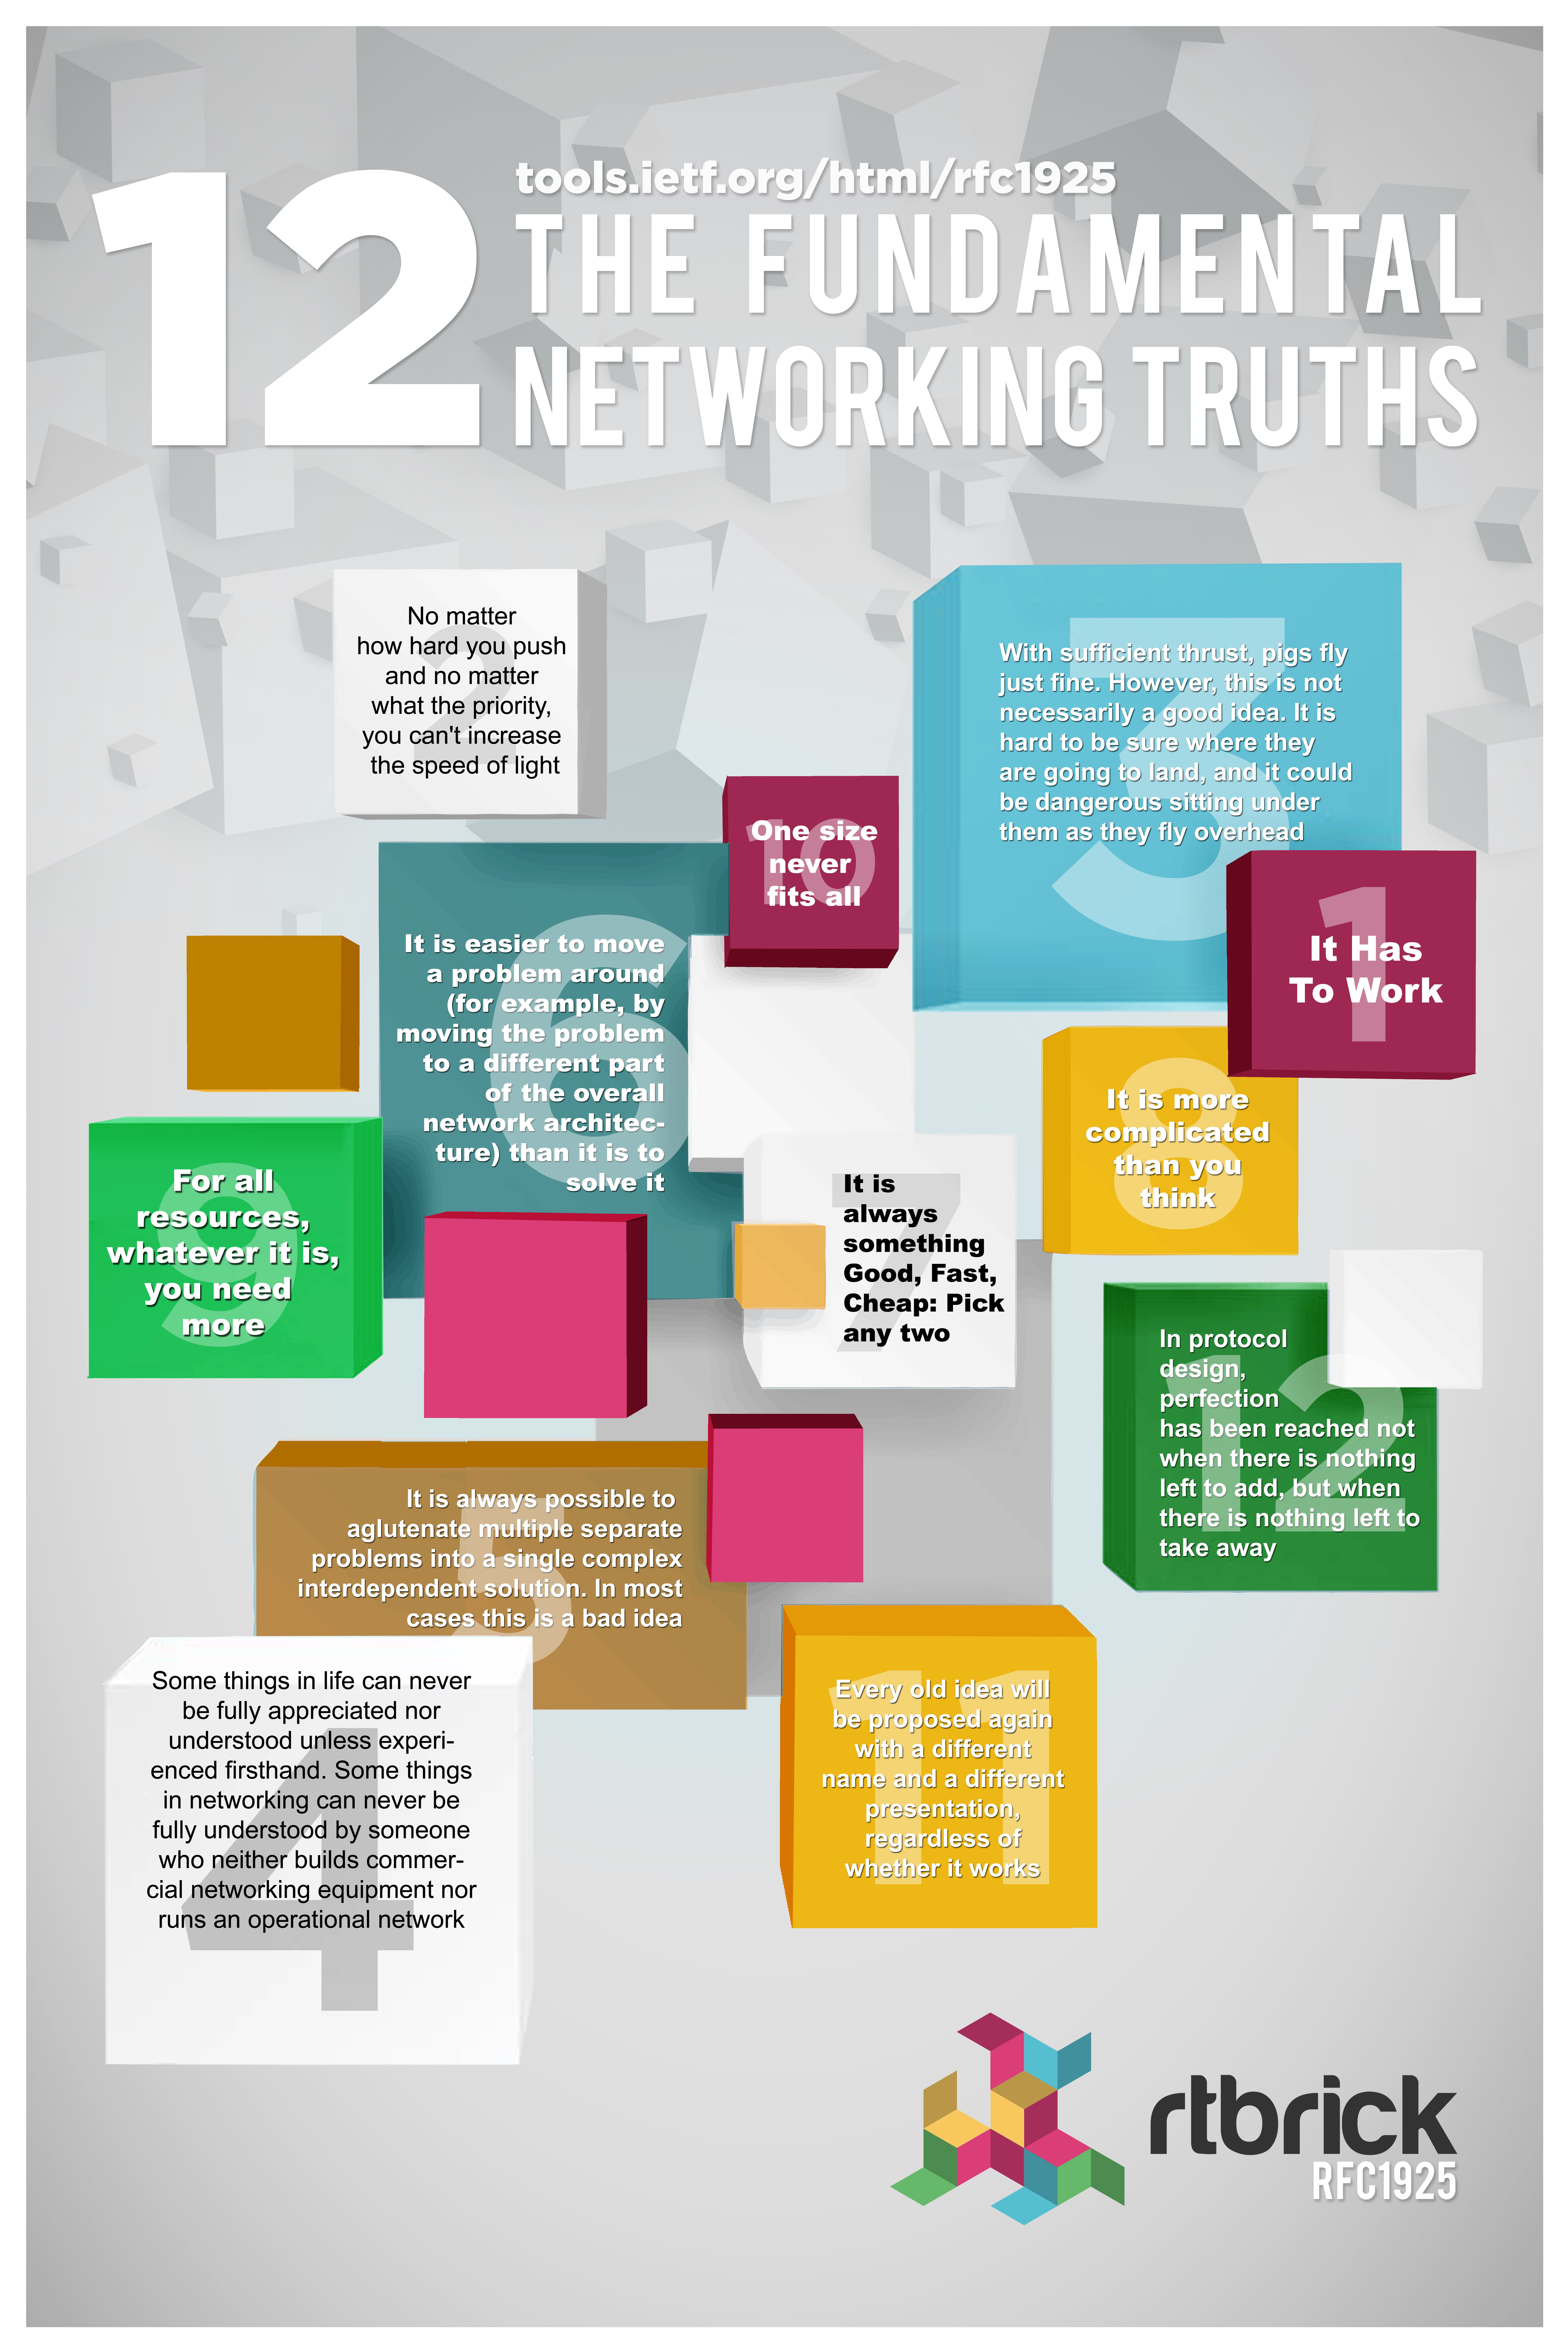 The 12 Networking Truths